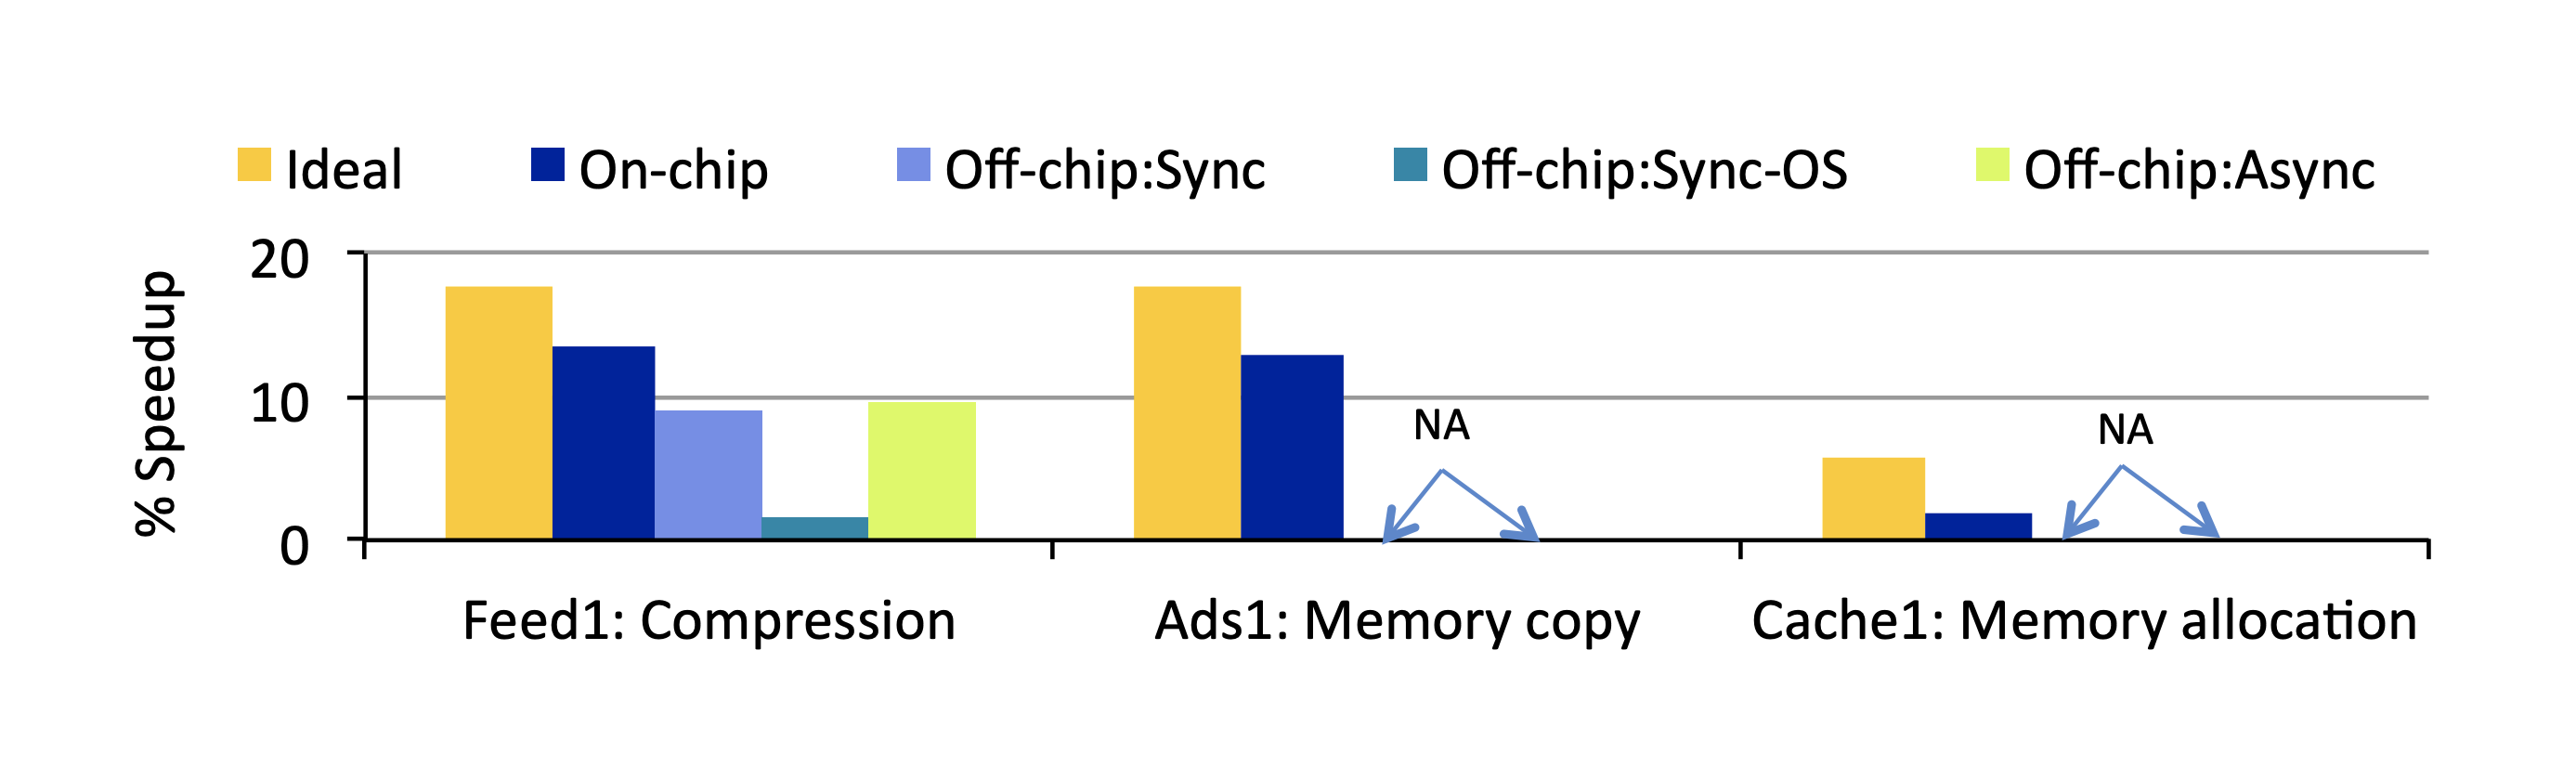 Bar graph of percentage of speedup on different computing steps by Accelerometer